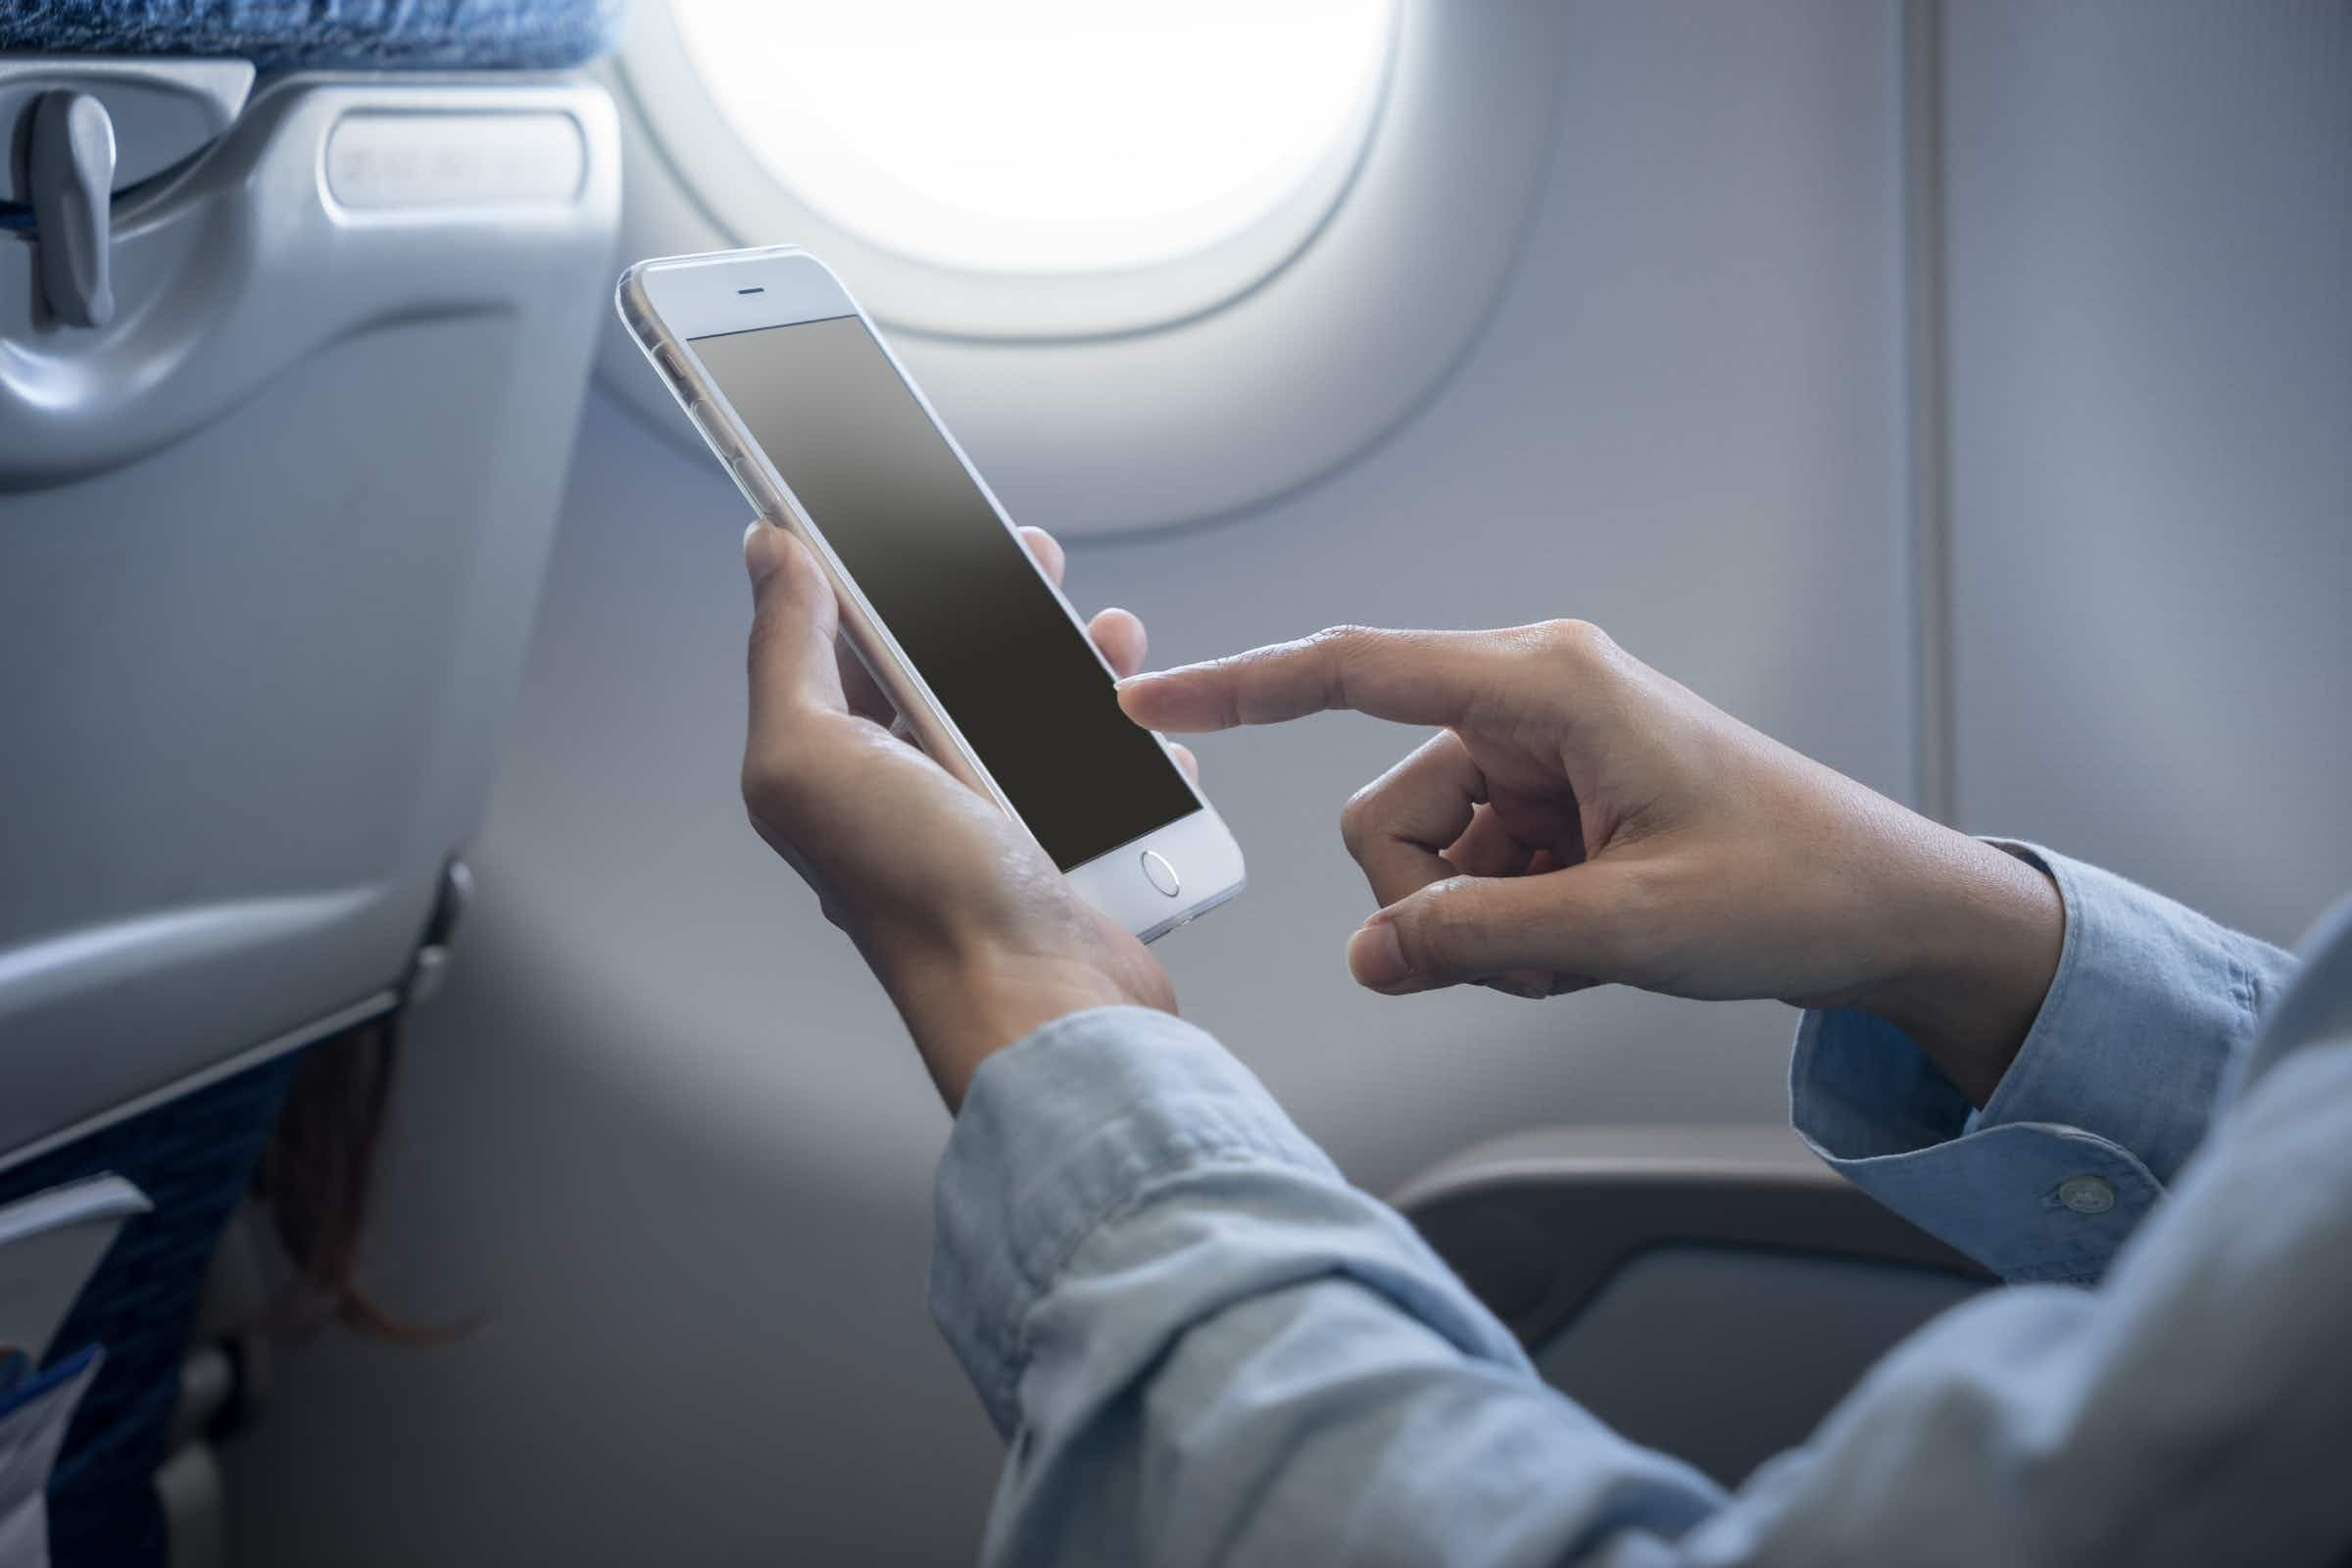 This airline is supplying a meditation app on flights to help passengers chill out